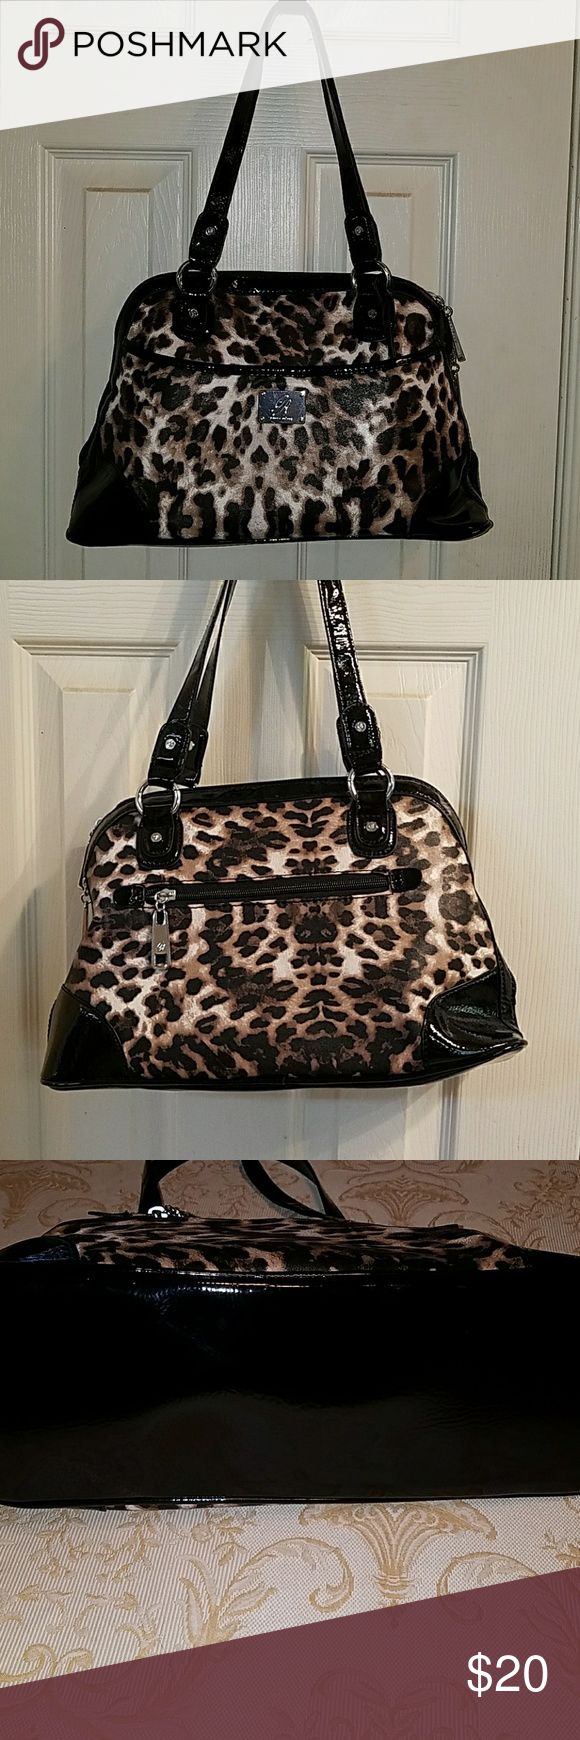 Gorgeous animal print purse by Grace Adele NWOT This is a fabulous animal print purse by Grace Adele with black patent leather trim multiple Pockets inside side pockets on both of the outer side it has no flaws it is never been carried it is in Immaculate condition with no odors Grace Adele Bags